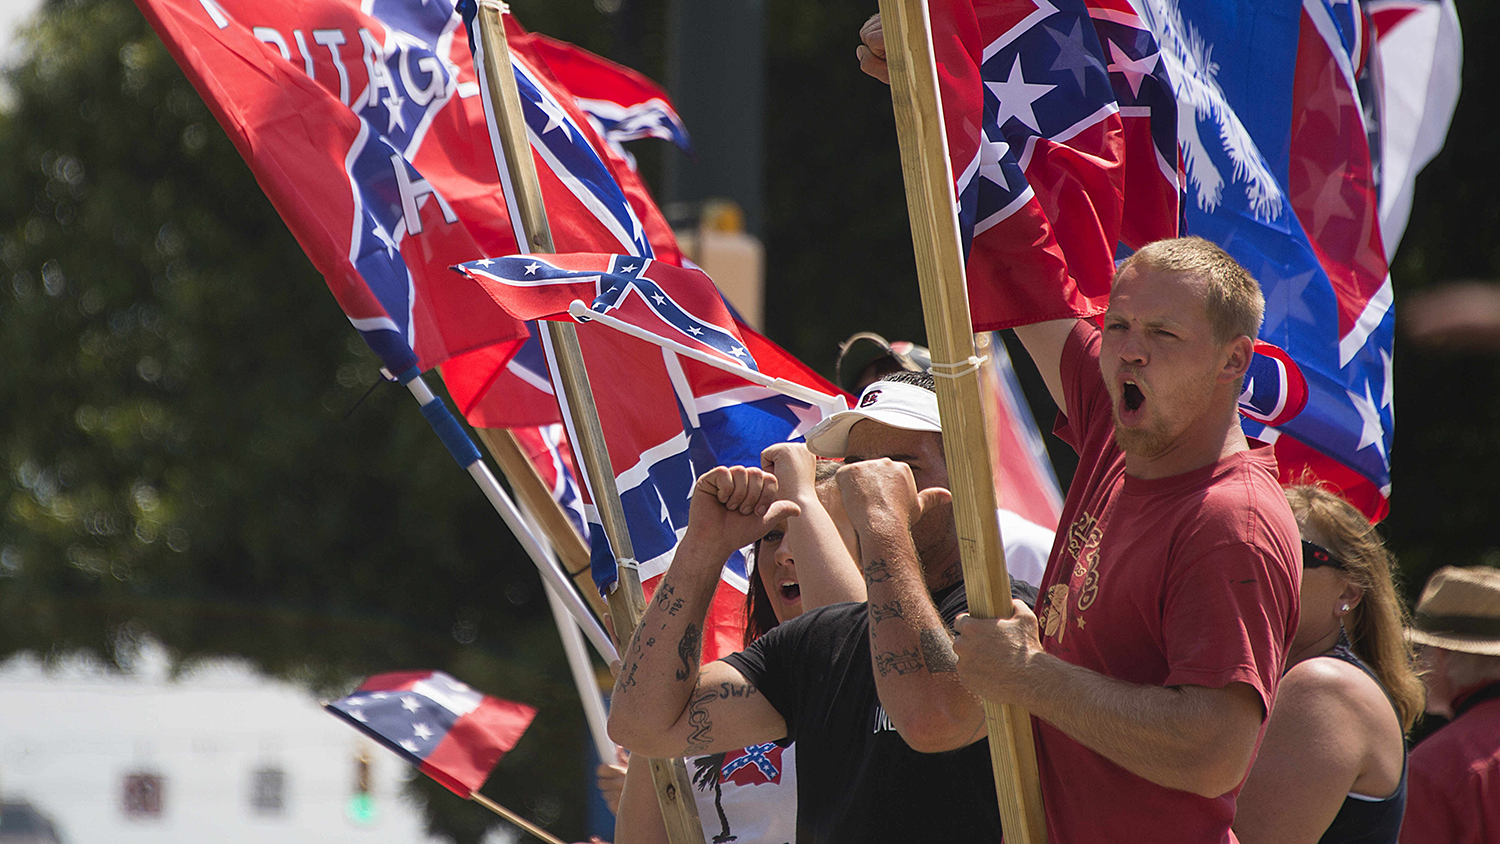 Confederate flag supporters rally